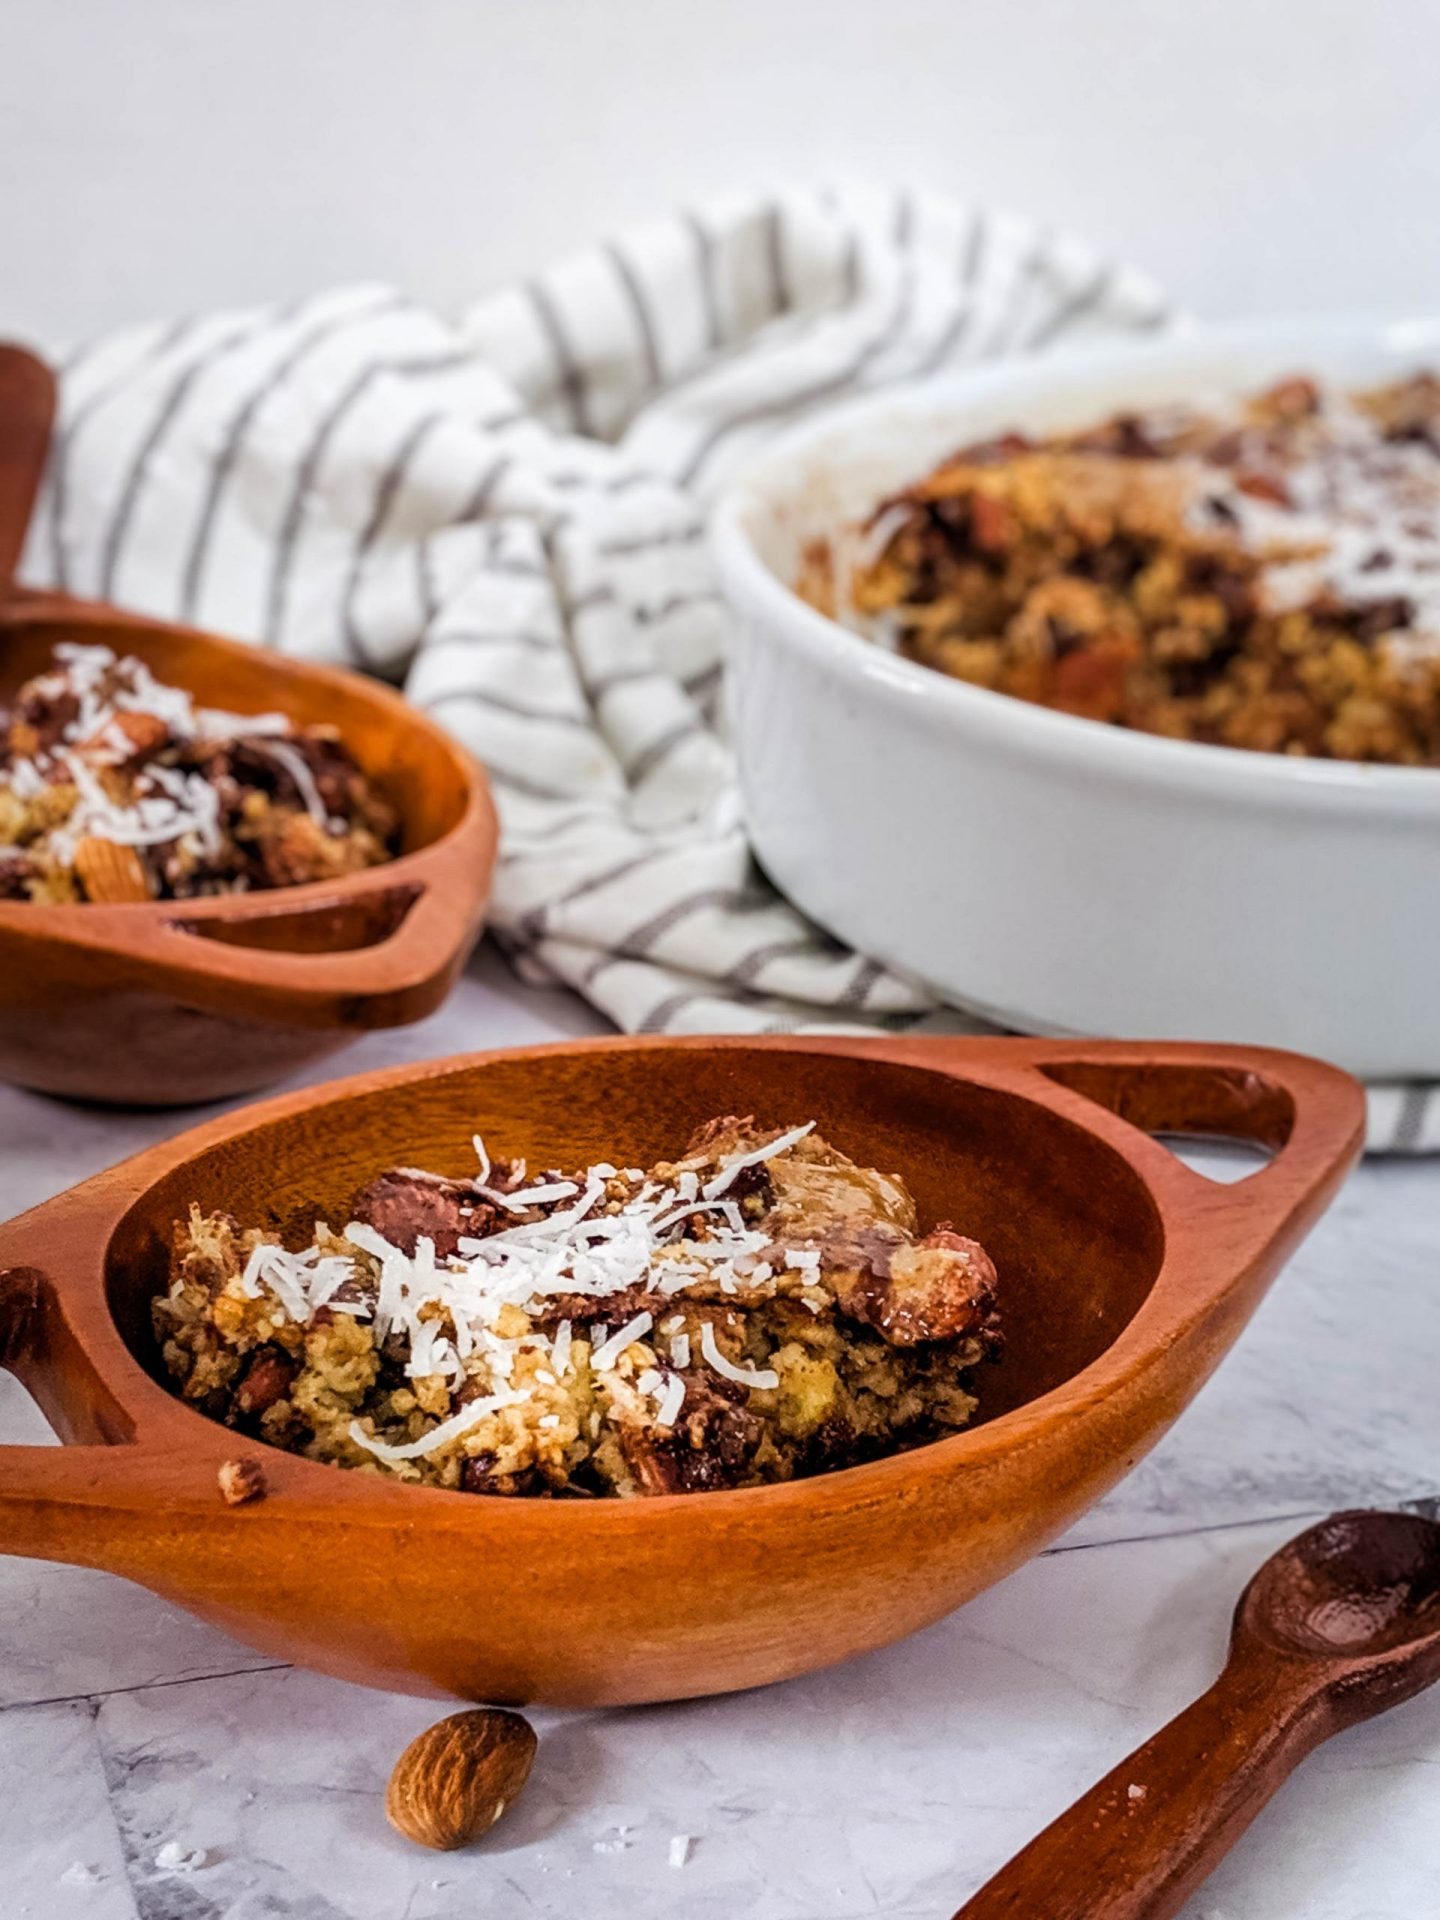 baked oatmeal with almonds, chocolate, coconut